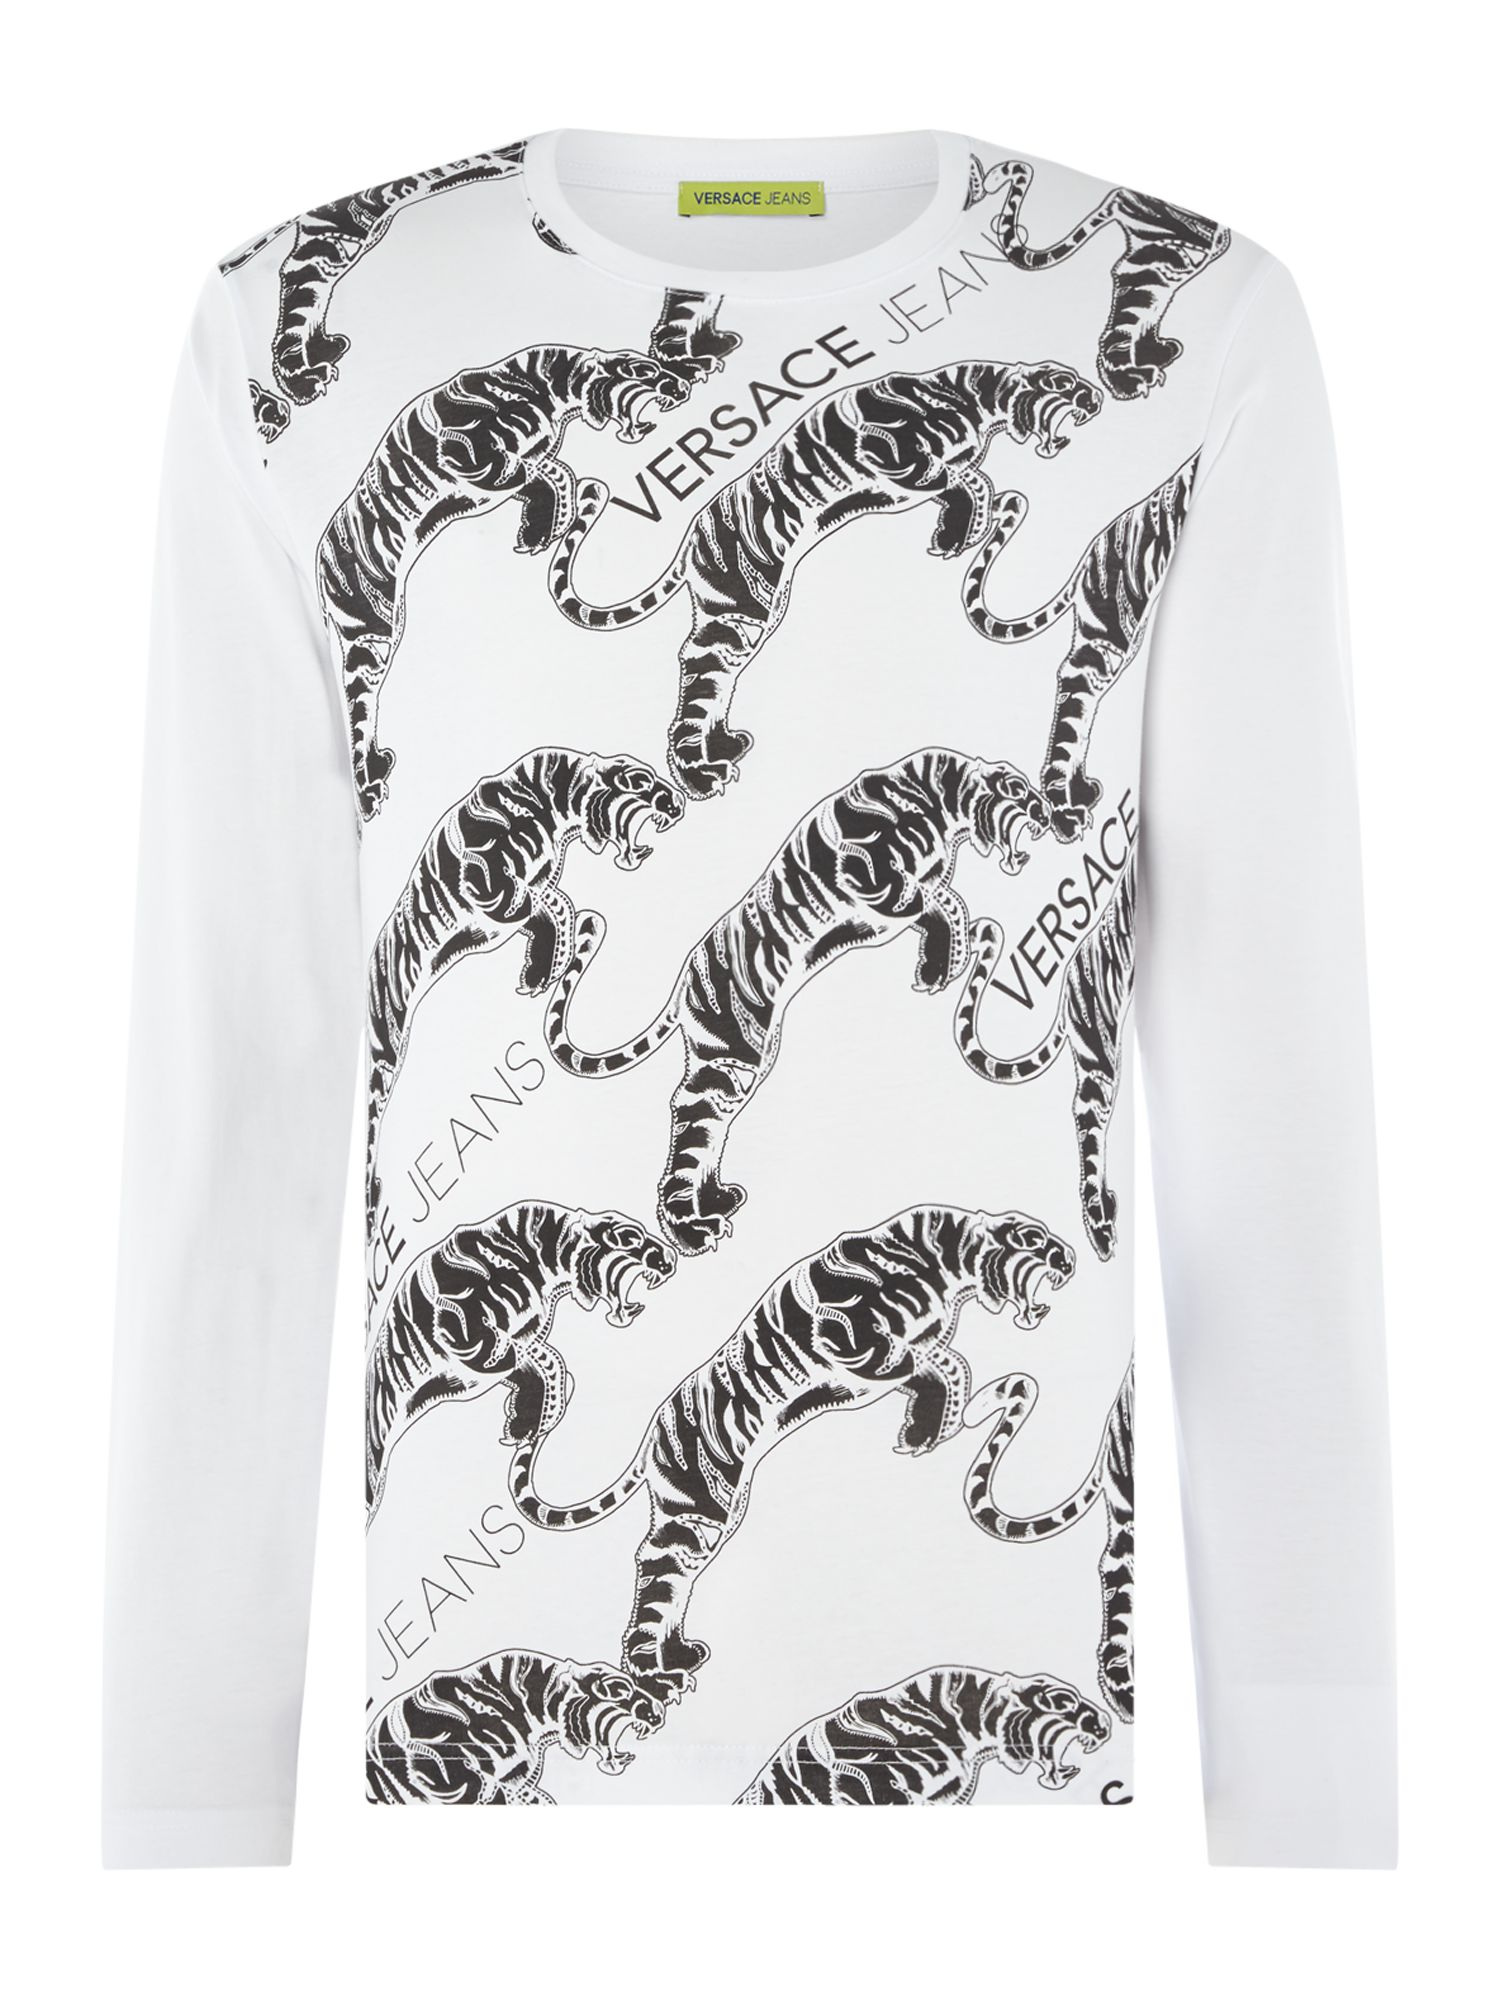 Men's Versace Jeans All Over Tiger Print Long Sleeve T-Shirt, White